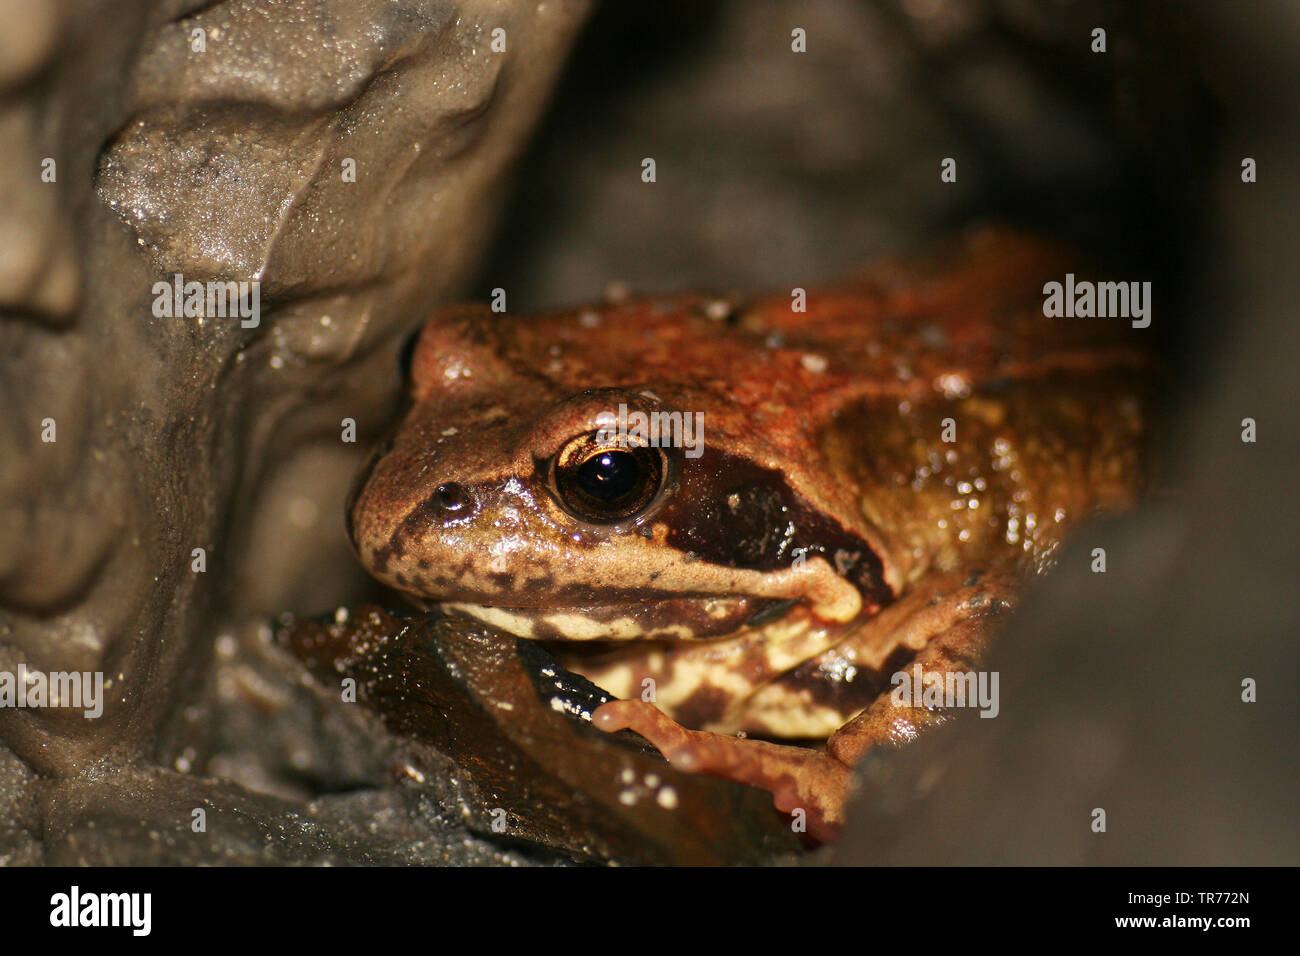 common frog, grass frog (Rana temporaria), portrait, Netherlands - Stock Image